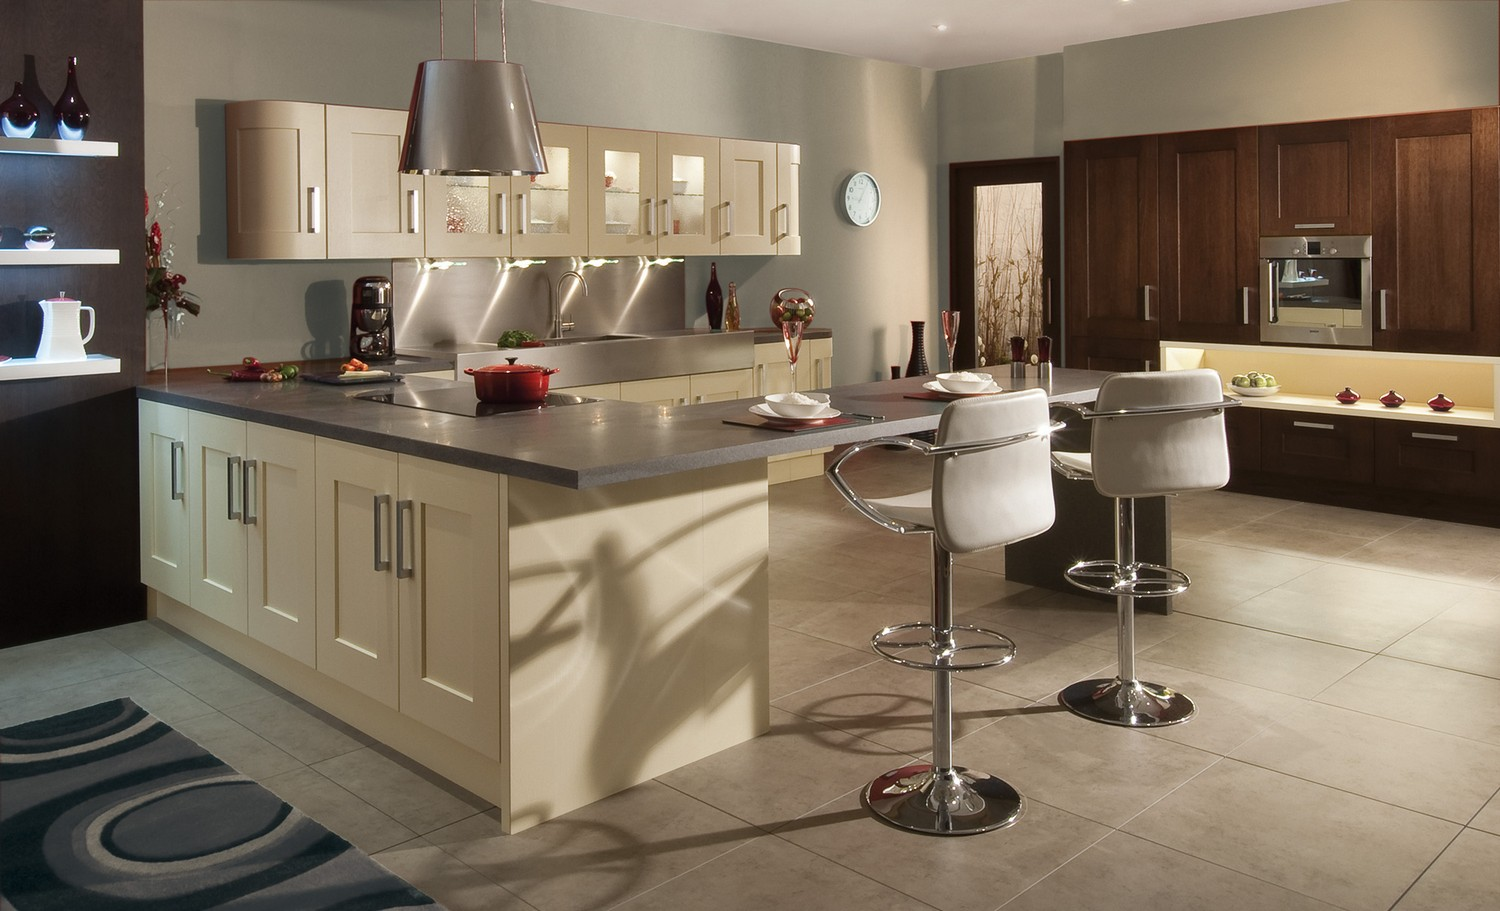 classic kitchens liverpool cleveland kitchens. Black Bedroom Furniture Sets. Home Design Ideas